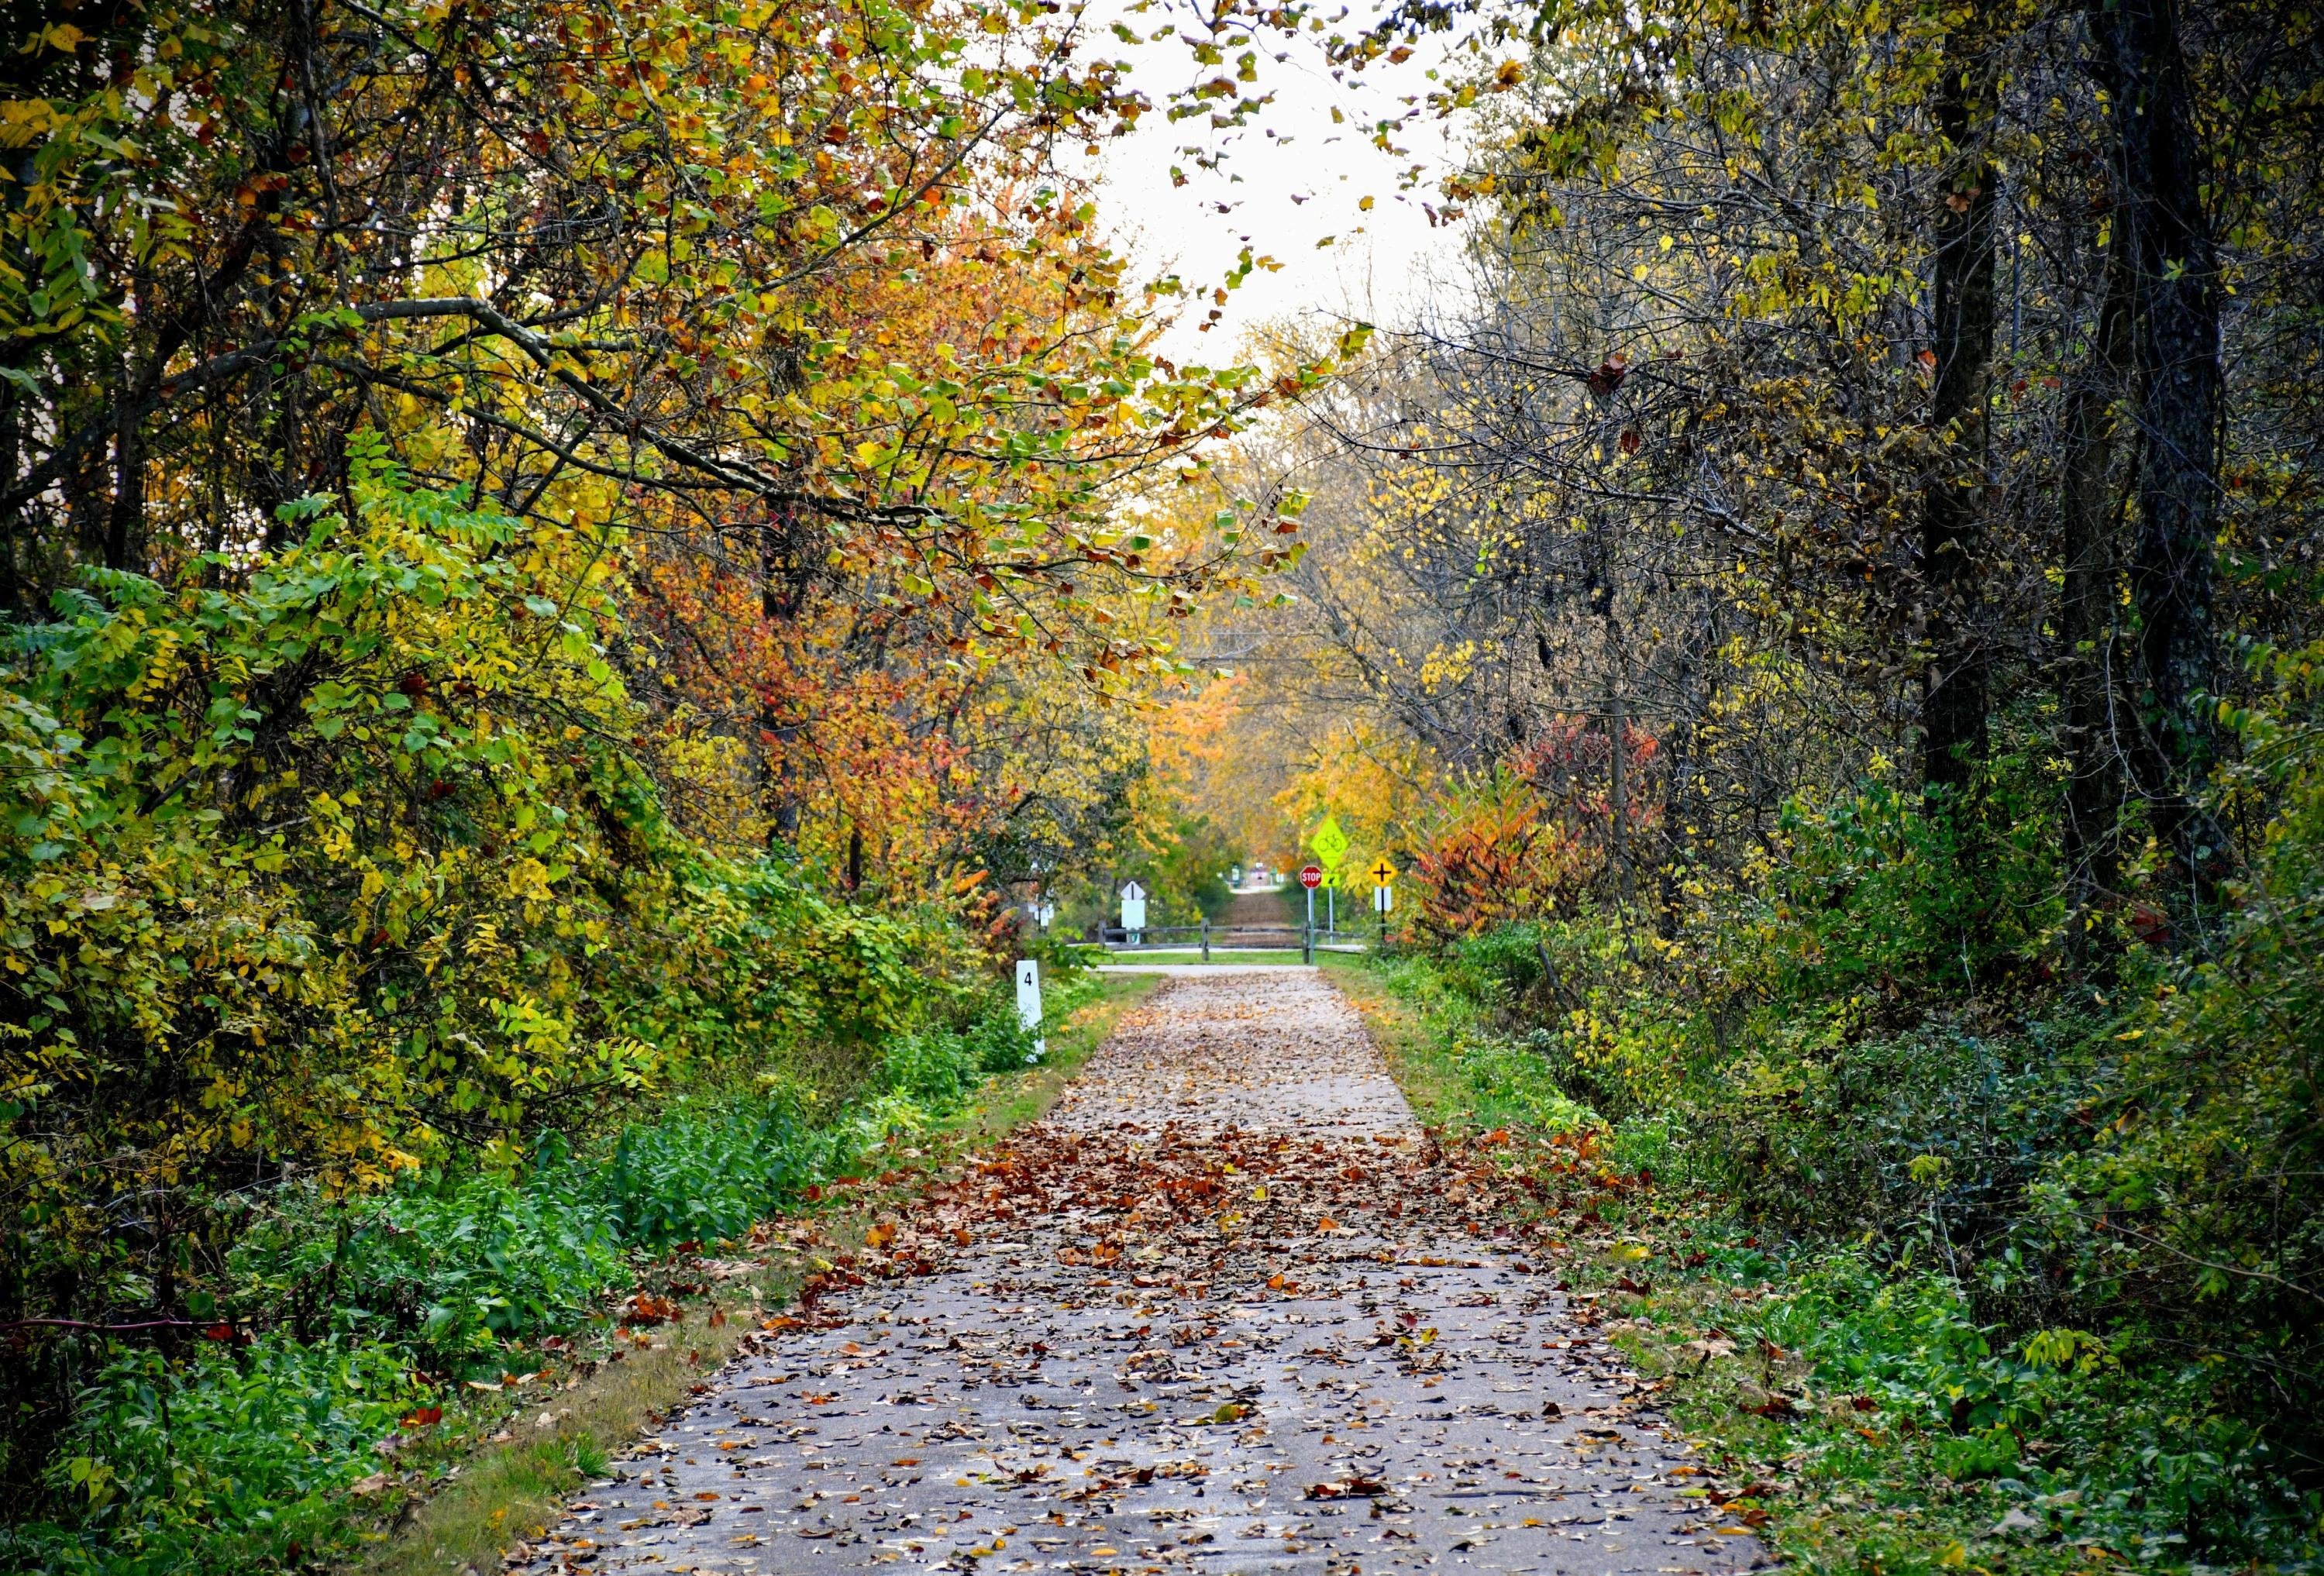 Walking trail to stop sign, Autumn